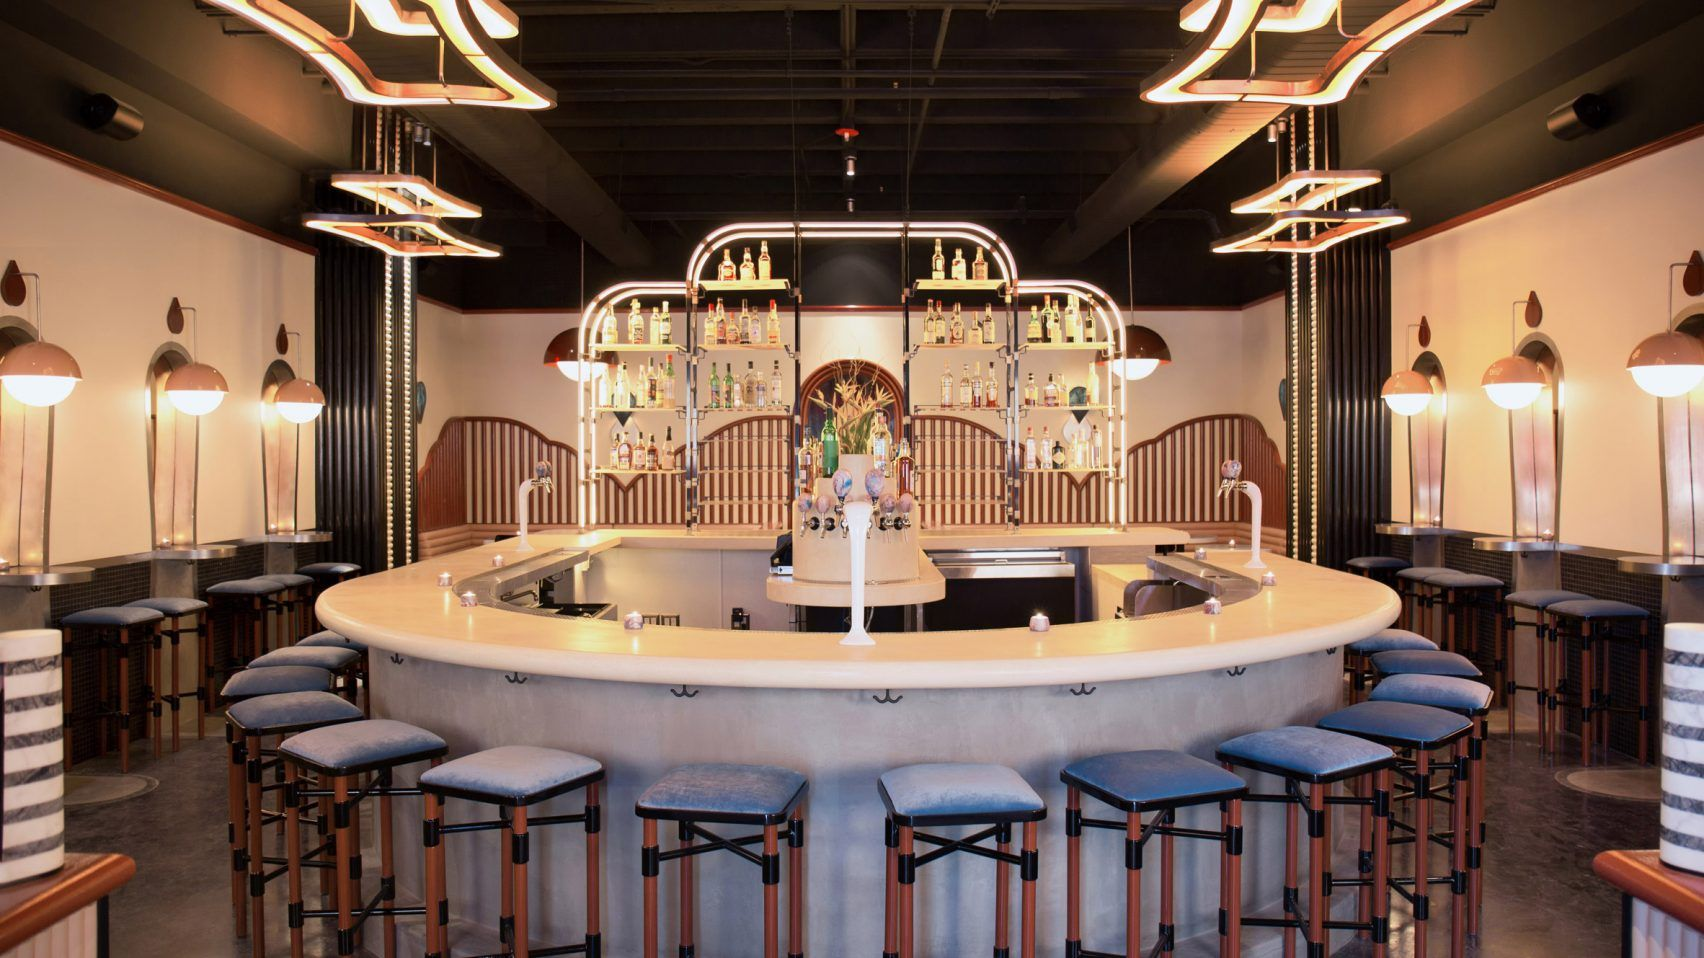 Discover This Startling Cinematic Cocktail Bar In West Hollywood Luxury Furniture Design Luxury Bar Bar Design